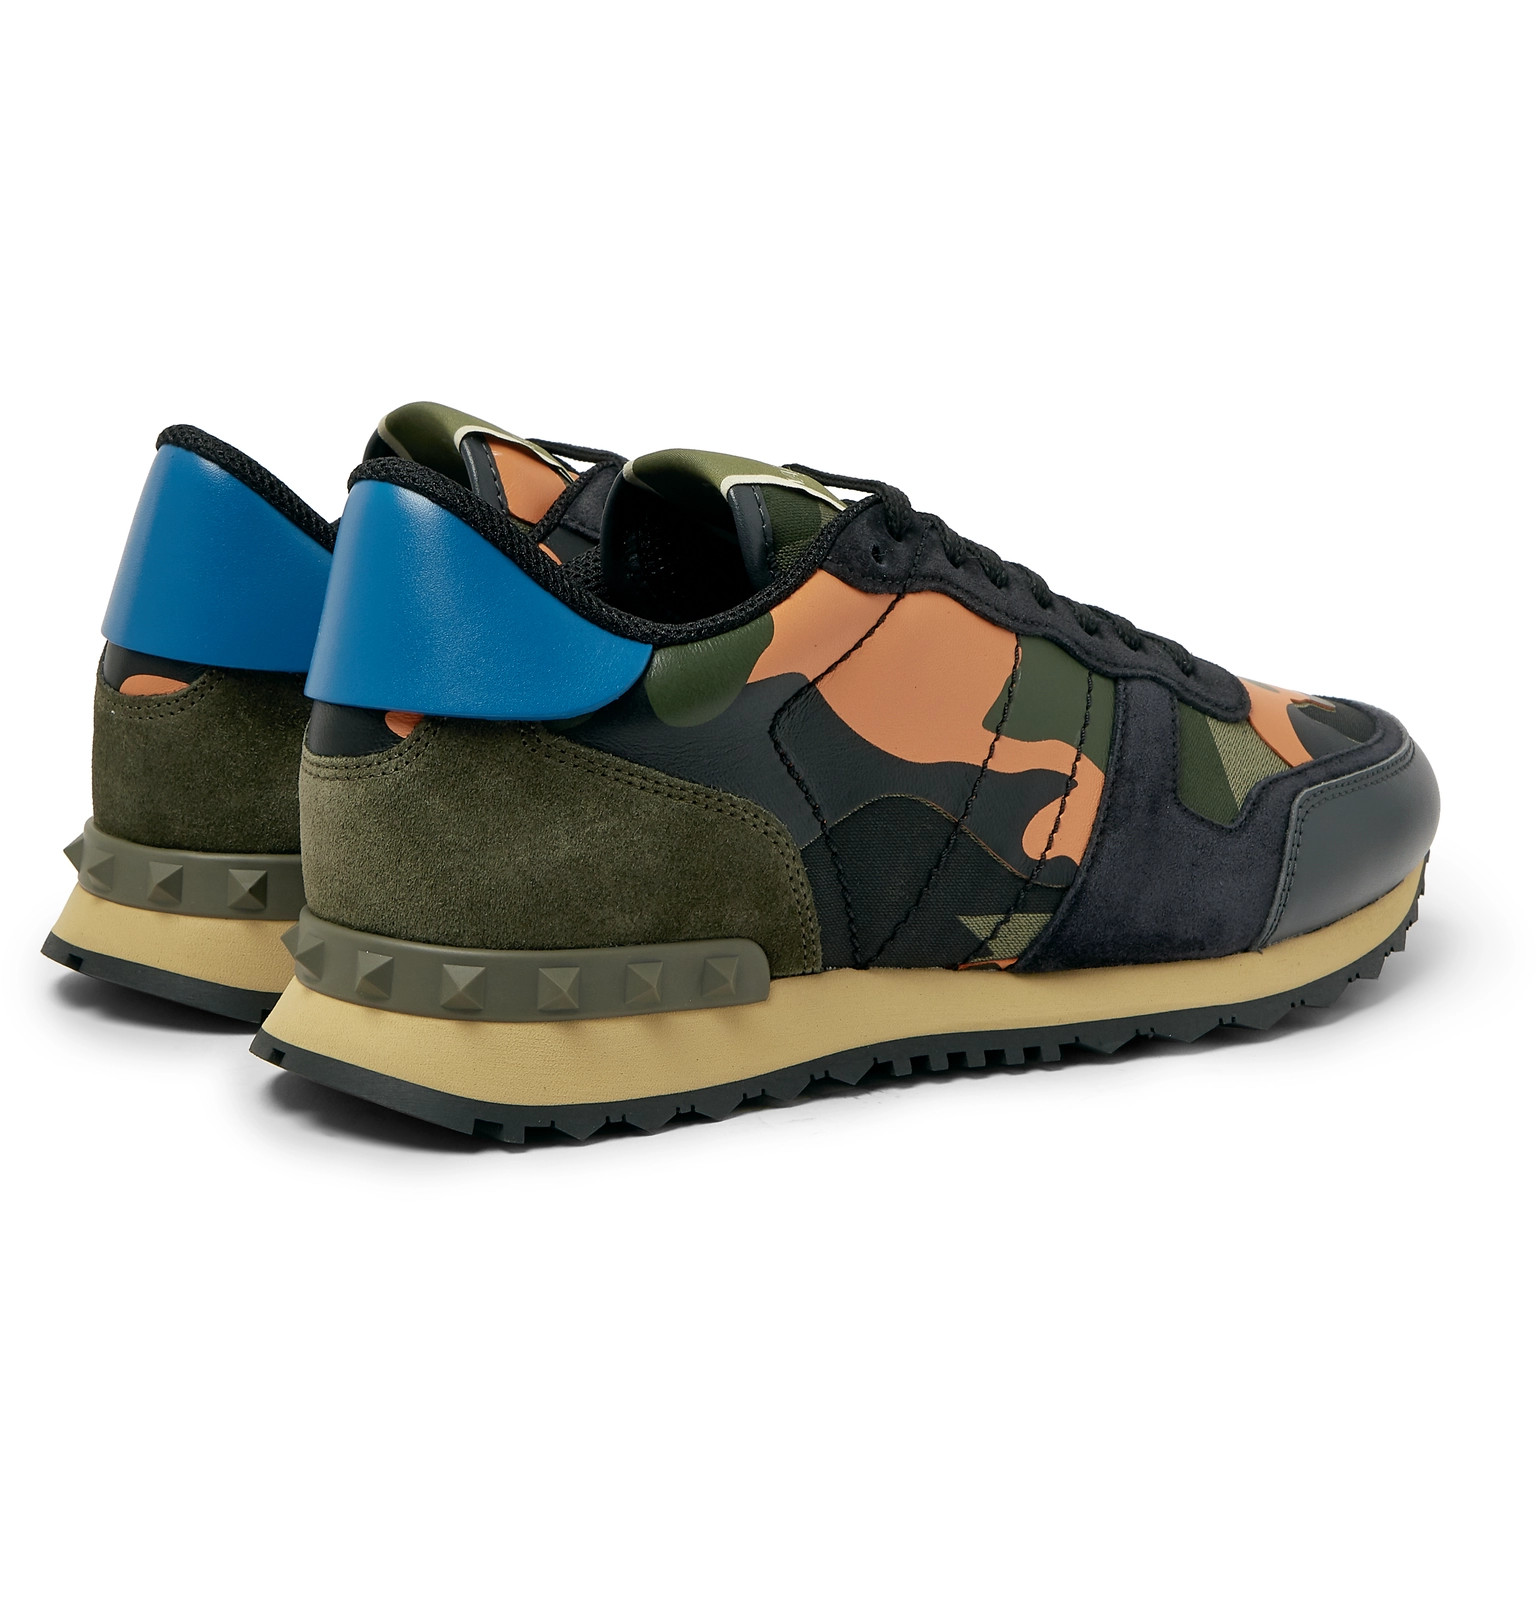 16933274740d8 ValentinoValentino Garavani Rockrunner Camouflage-Print Canvas, Leather and  Suede Sneakers